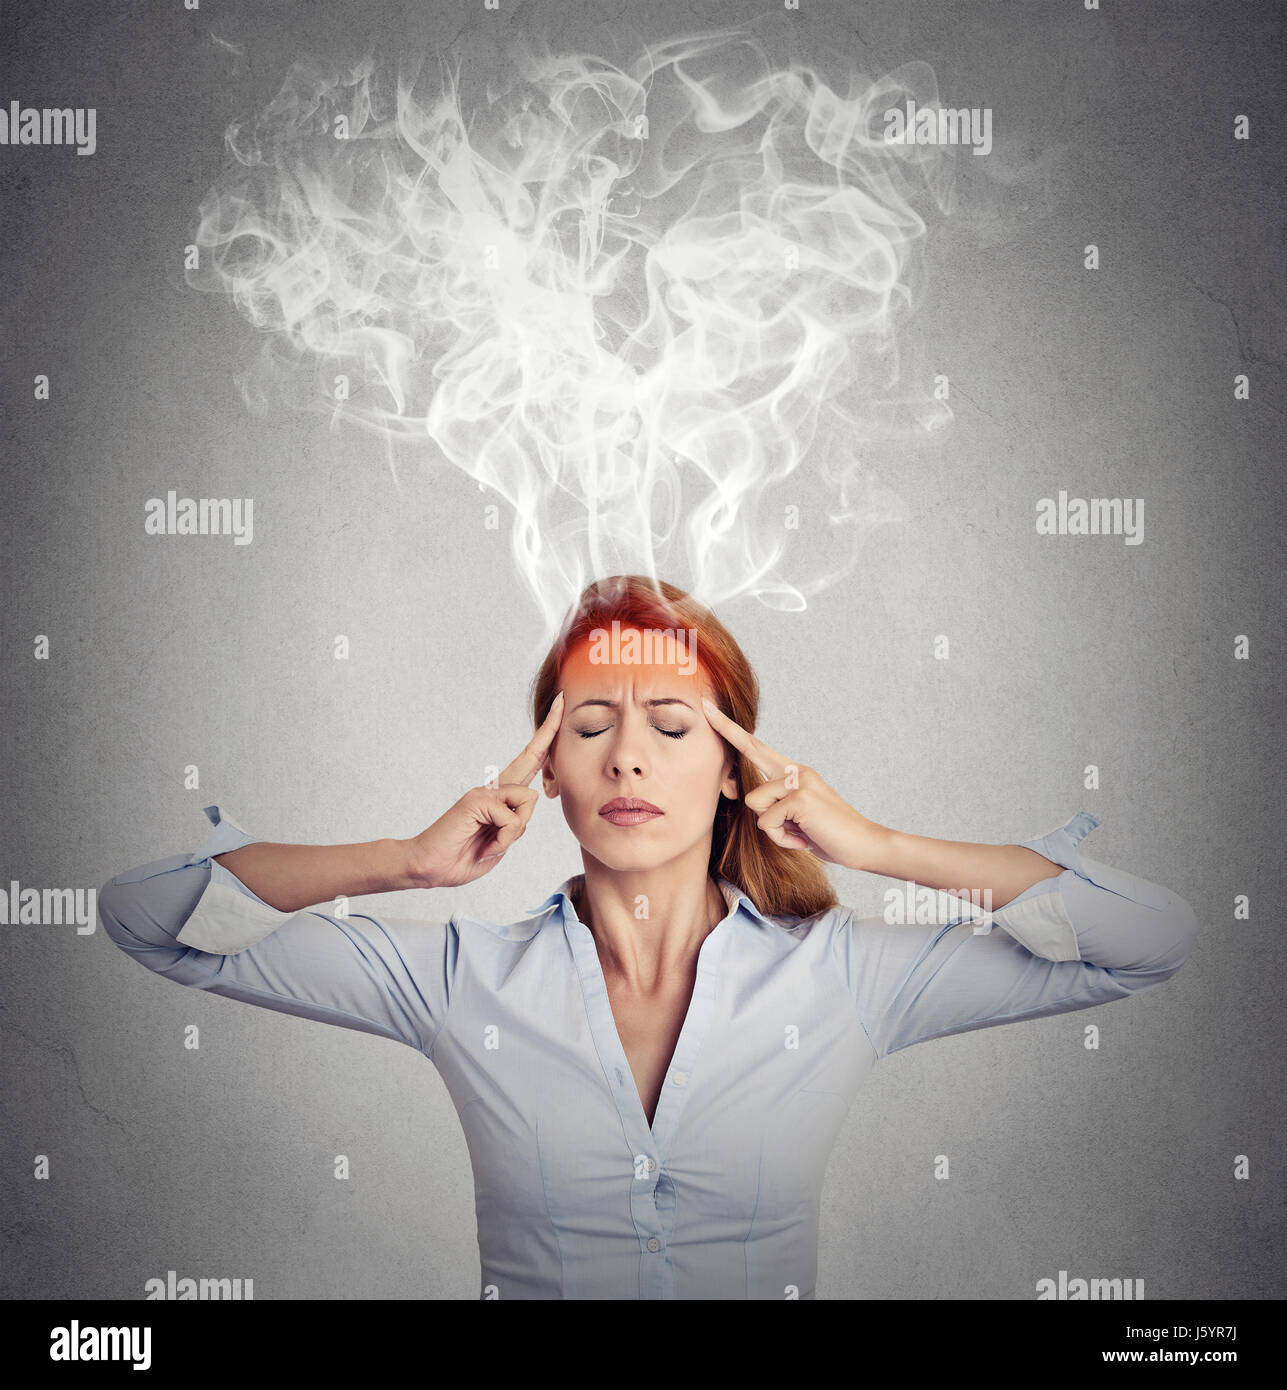 Portrait young woman thinking too hard steam coming out up of head isolated on grey wall background. Face expression - Stock Image